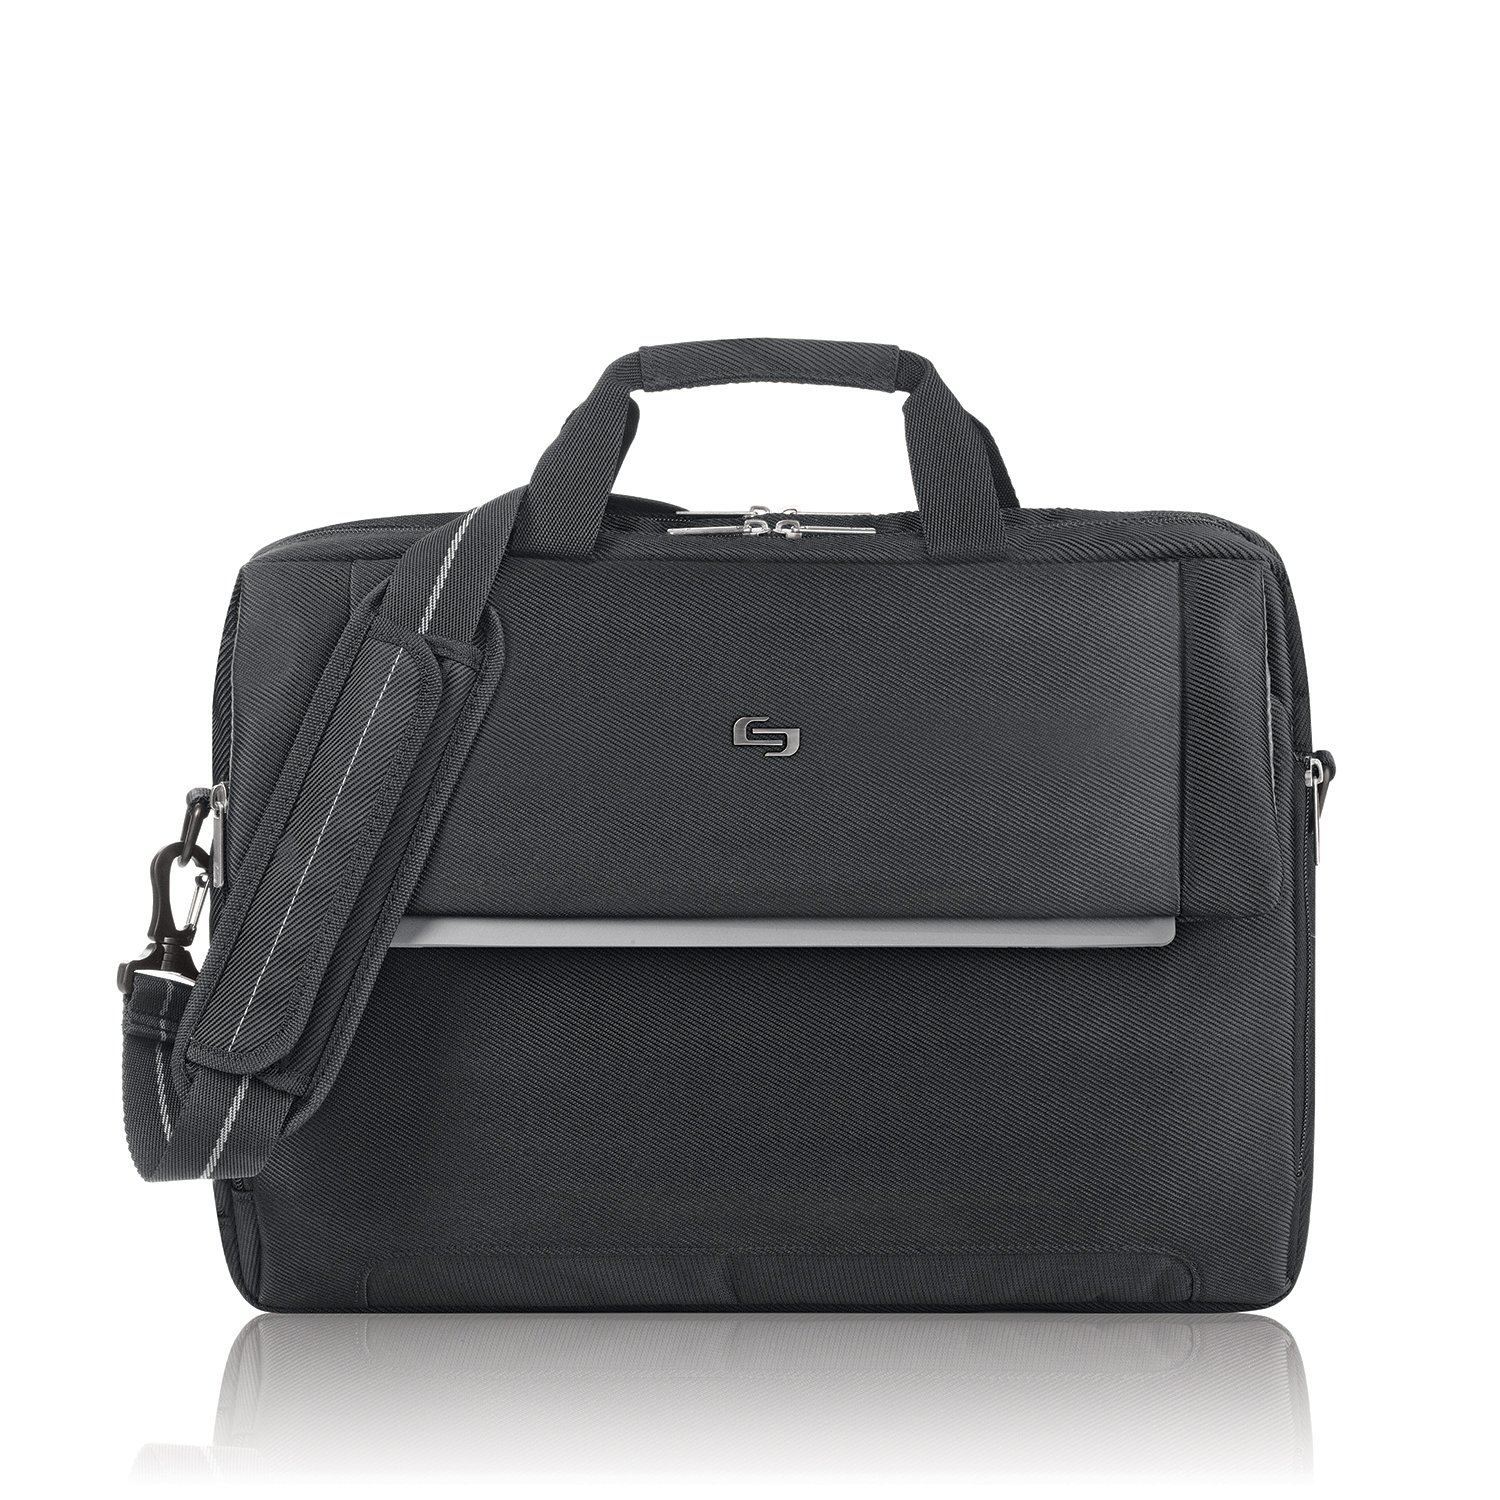 Solo Chrysler 17.3 Inch Laptop Briefcase, Black by SOLO (Image #1)